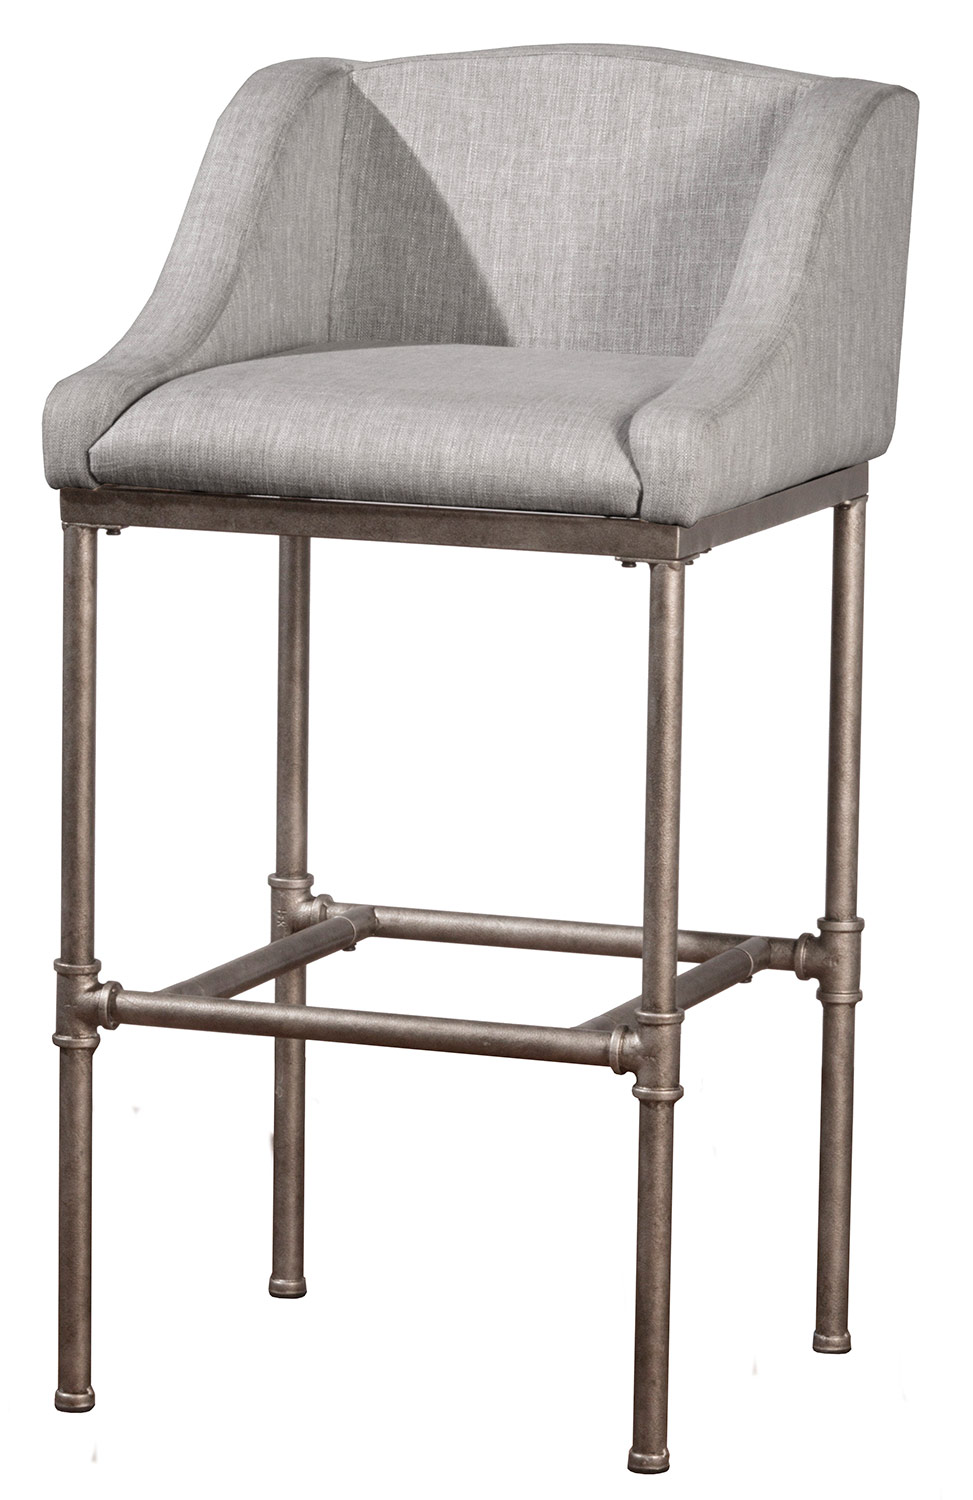 Wondrous Hillsdale Dillon Non Swivel Counter Stool Silver Caraccident5 Cool Chair Designs And Ideas Caraccident5Info